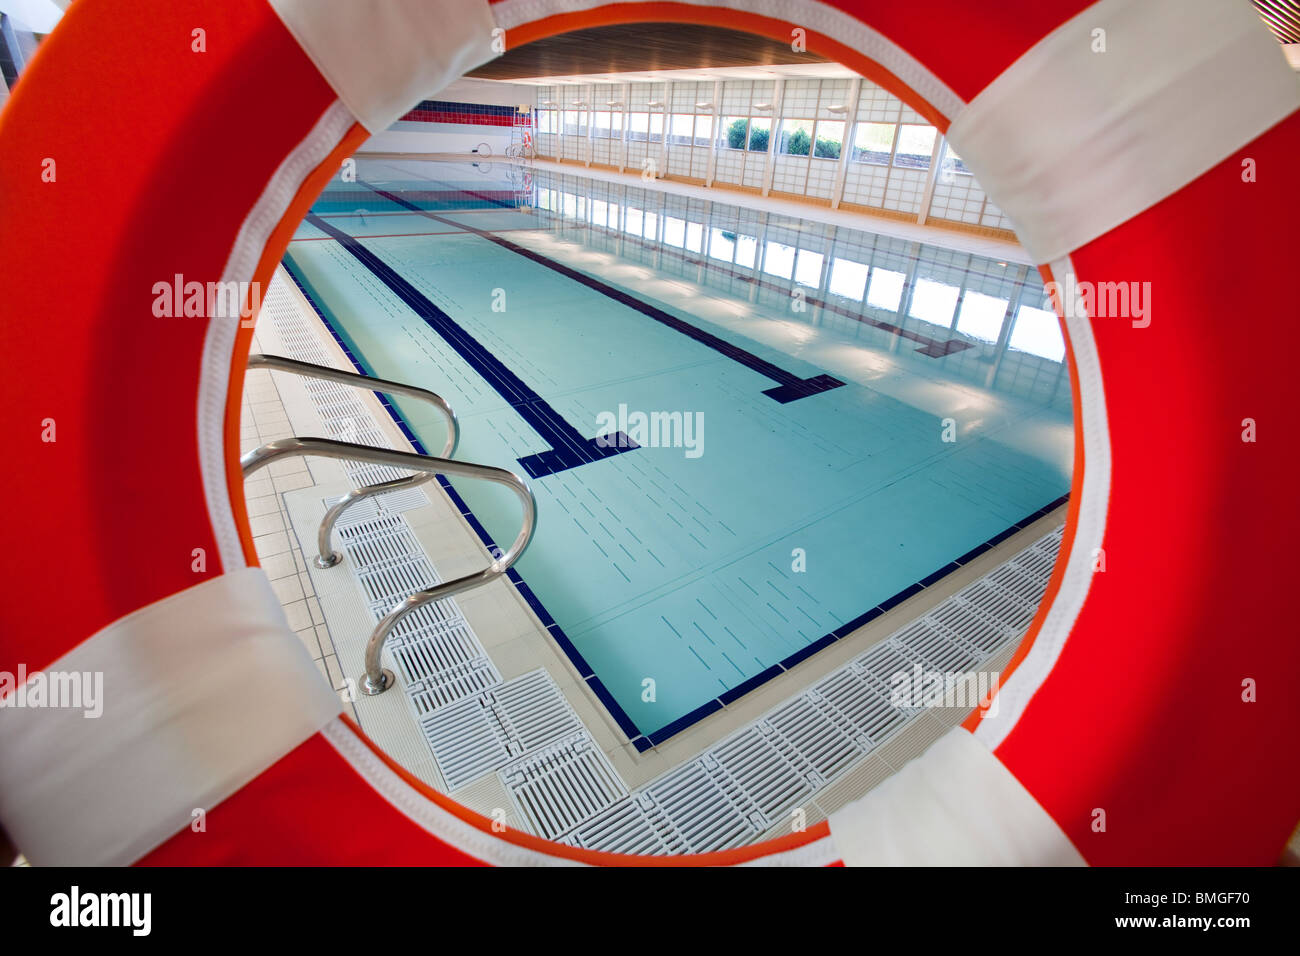 Swimming pool at Help for Heroes Rehabilitation Complex, Headley Court - Stock Image